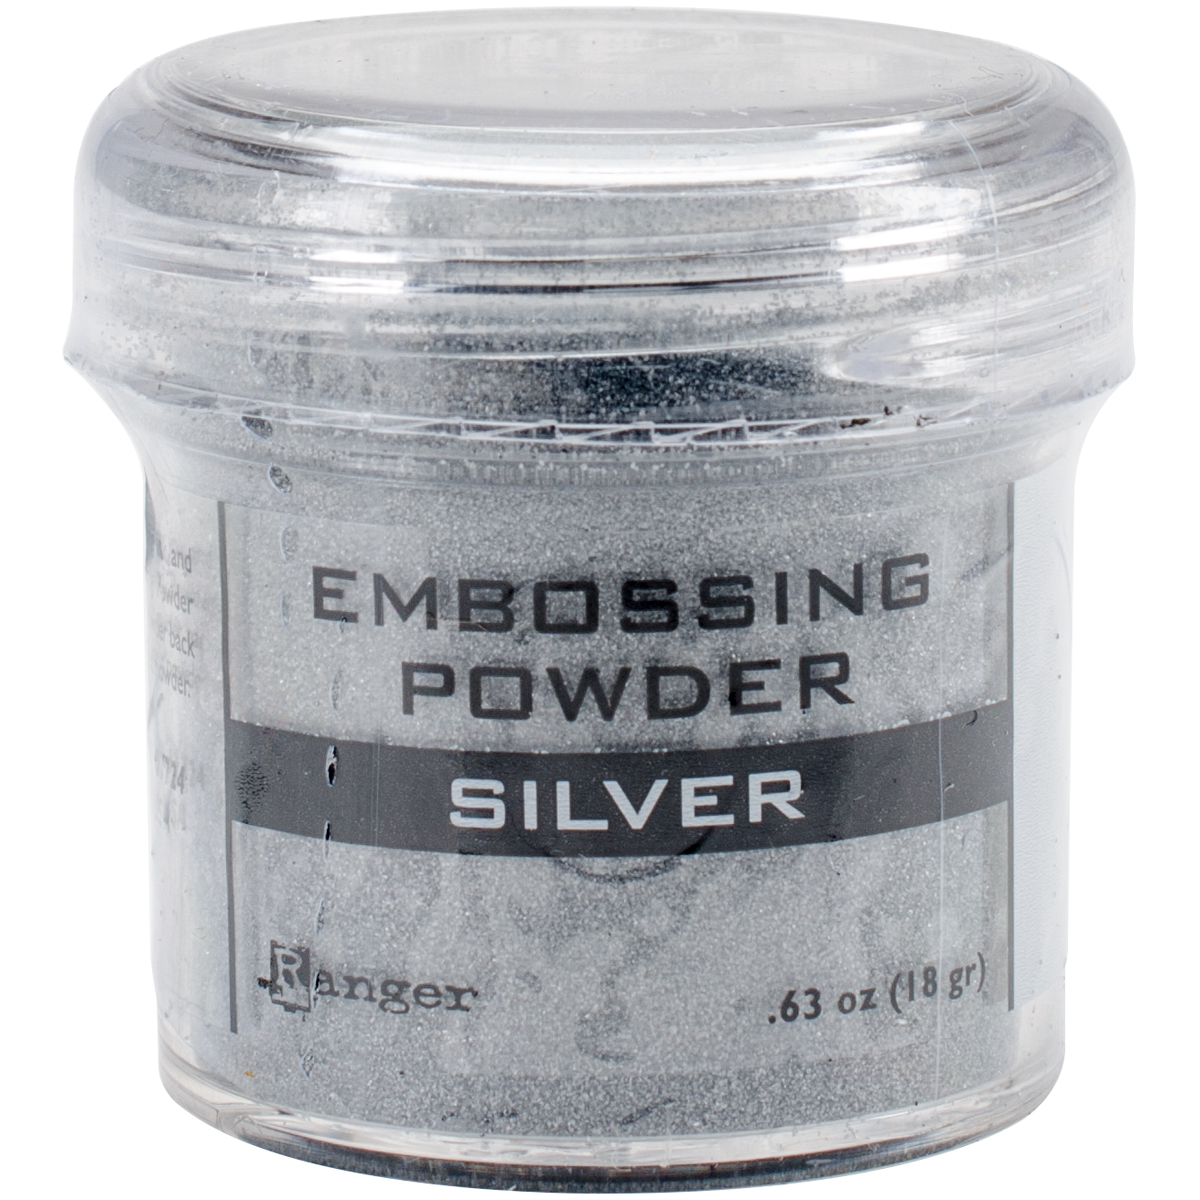 SILVER    -EMBOSSING POWDER 1OZ